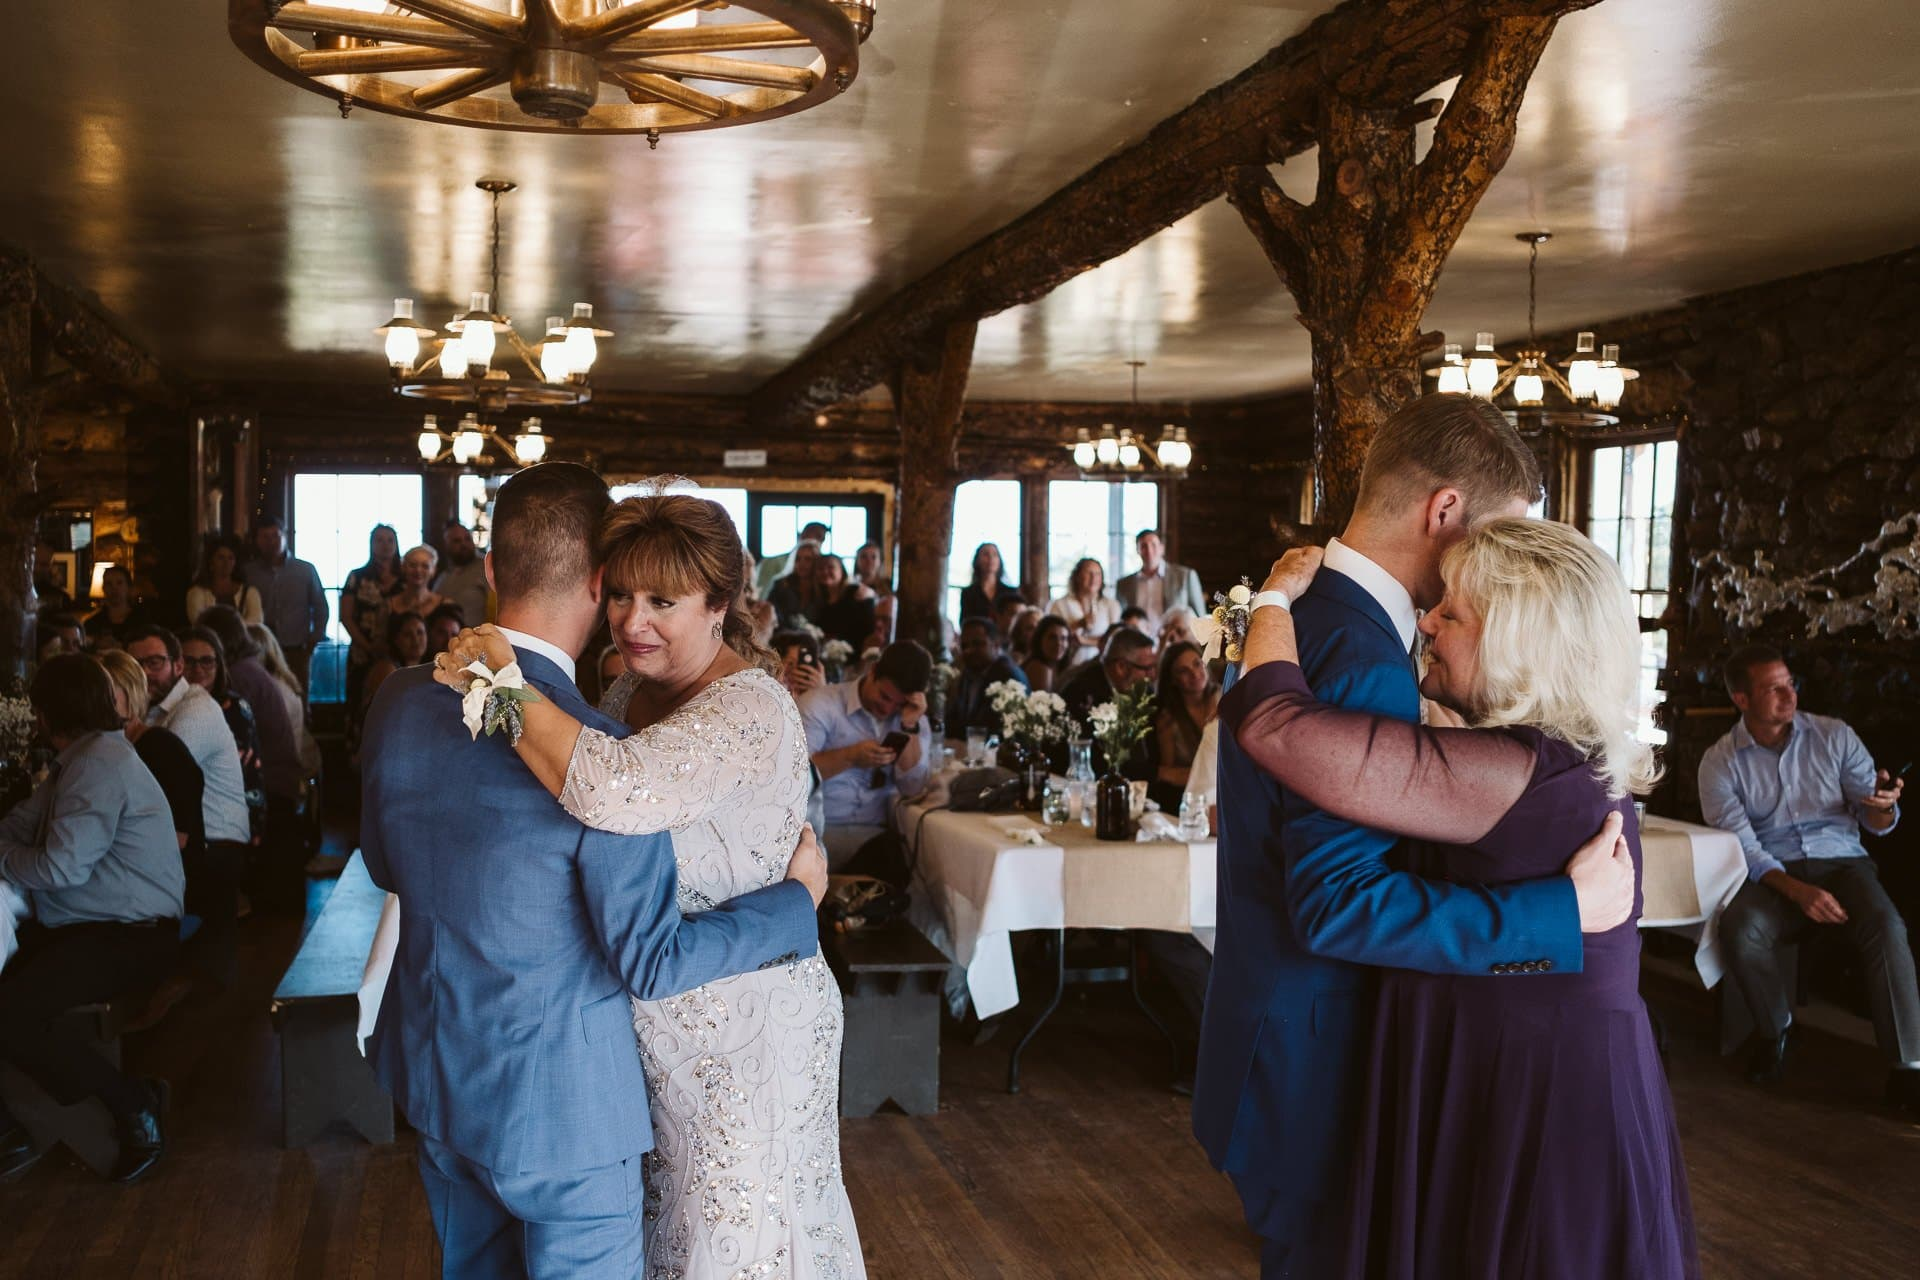 Mothers and sons dance at wedding at Colorado Mountain Ranch in Boulder